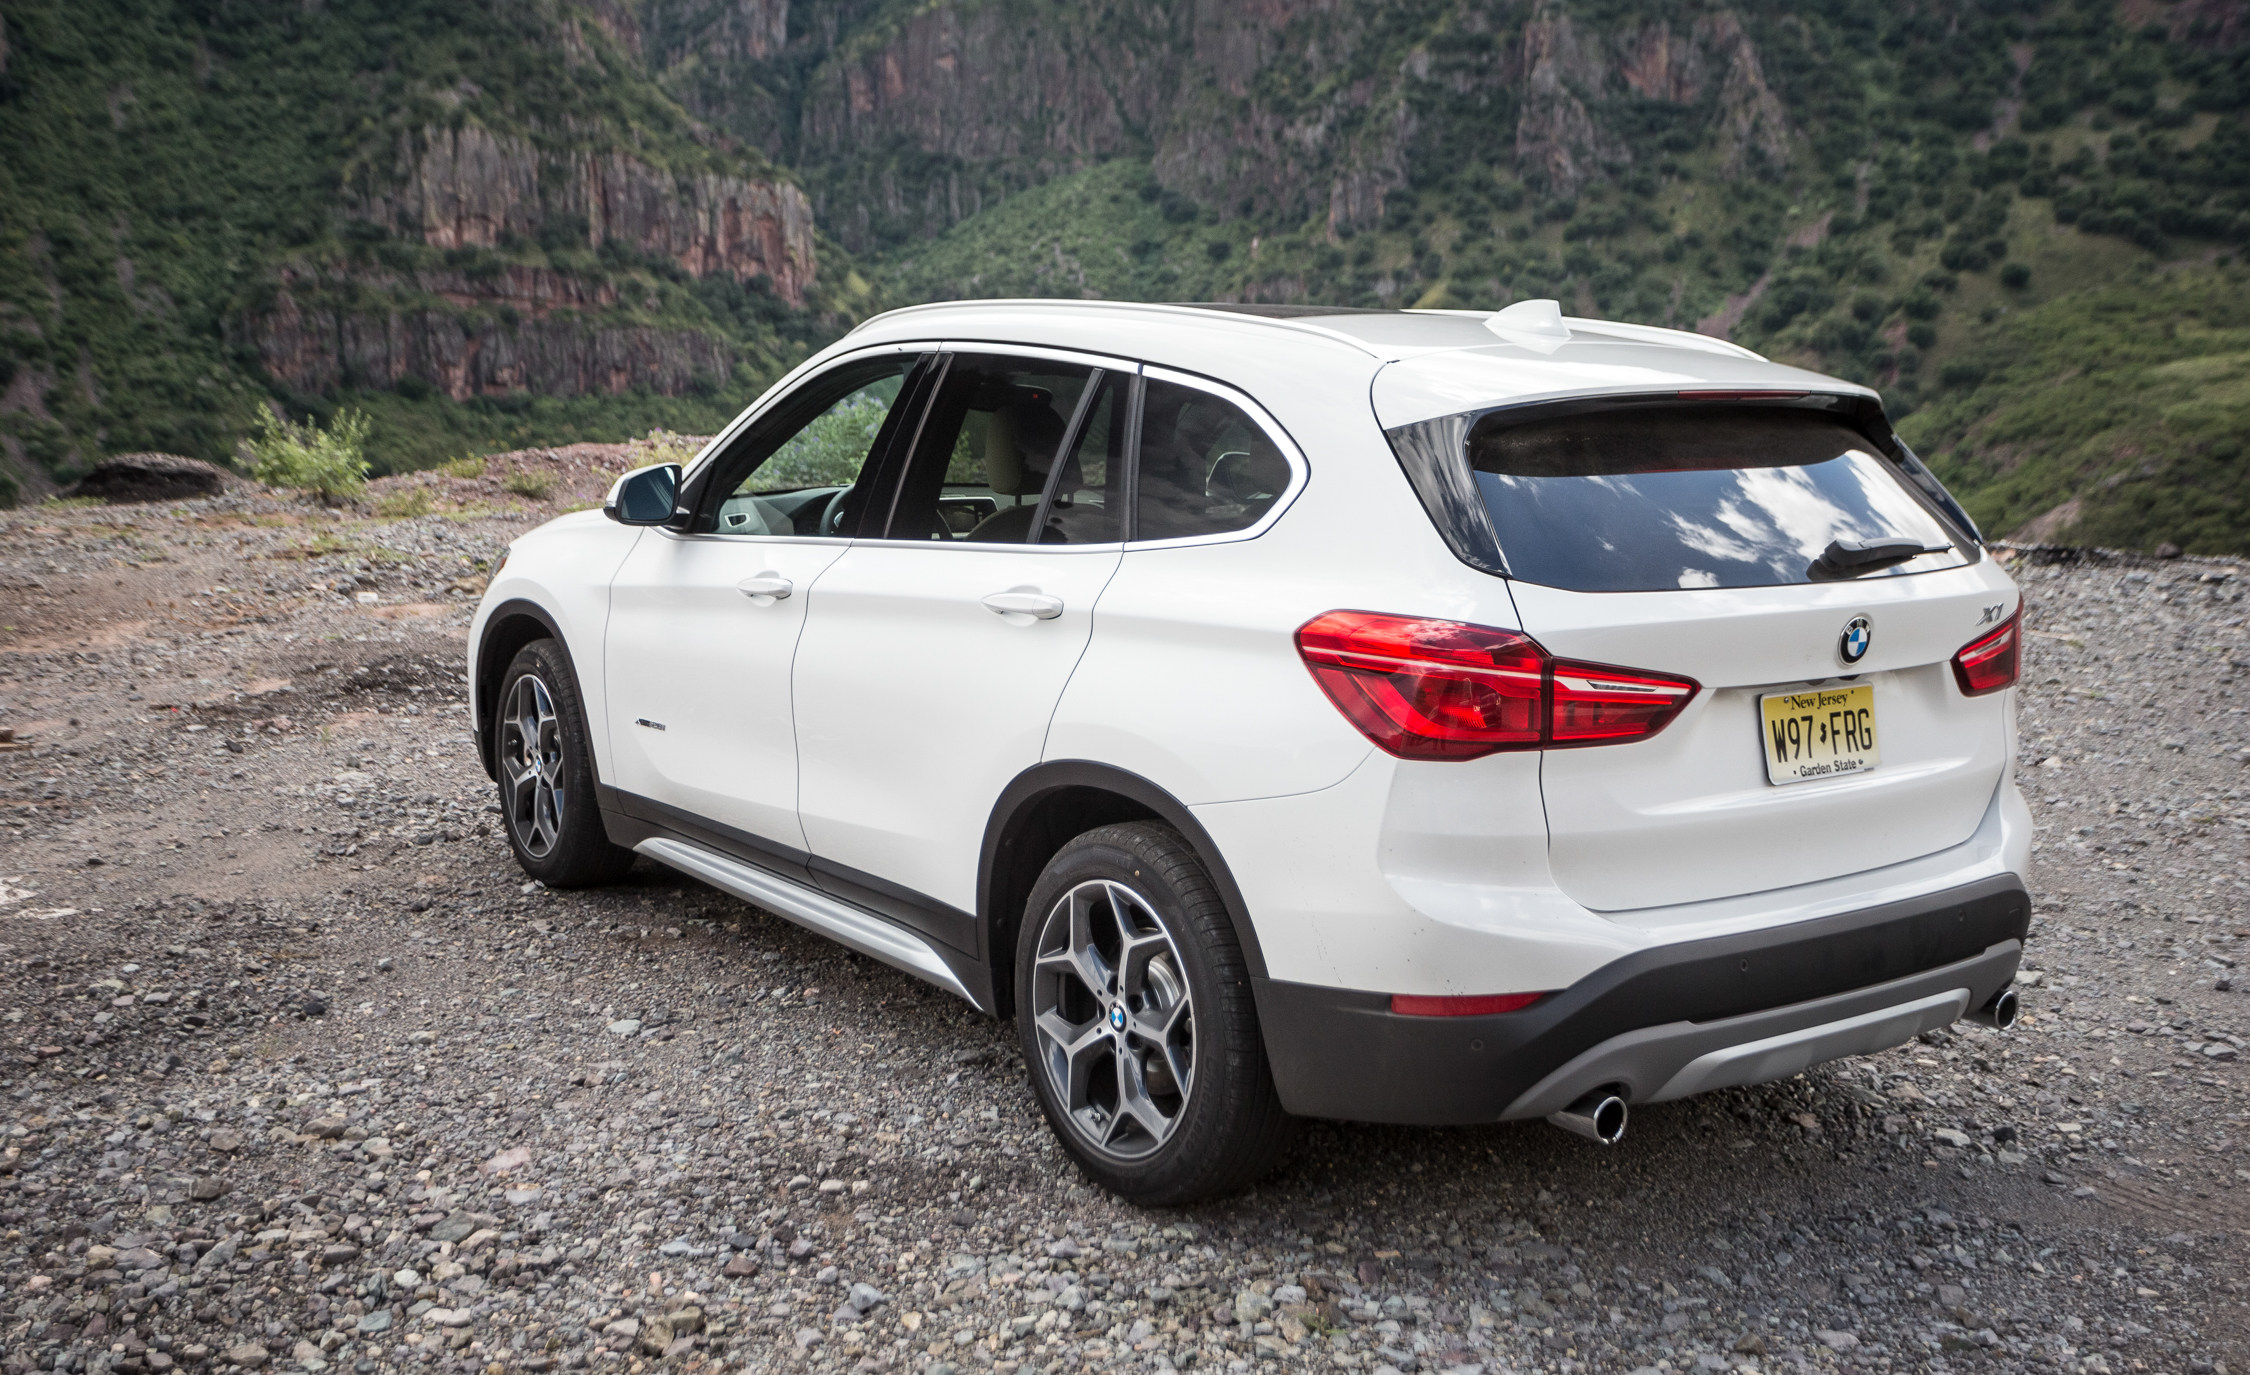 2016 BMW X1 Exterior White Metallic Side And Rear (Photo 7 of 36)